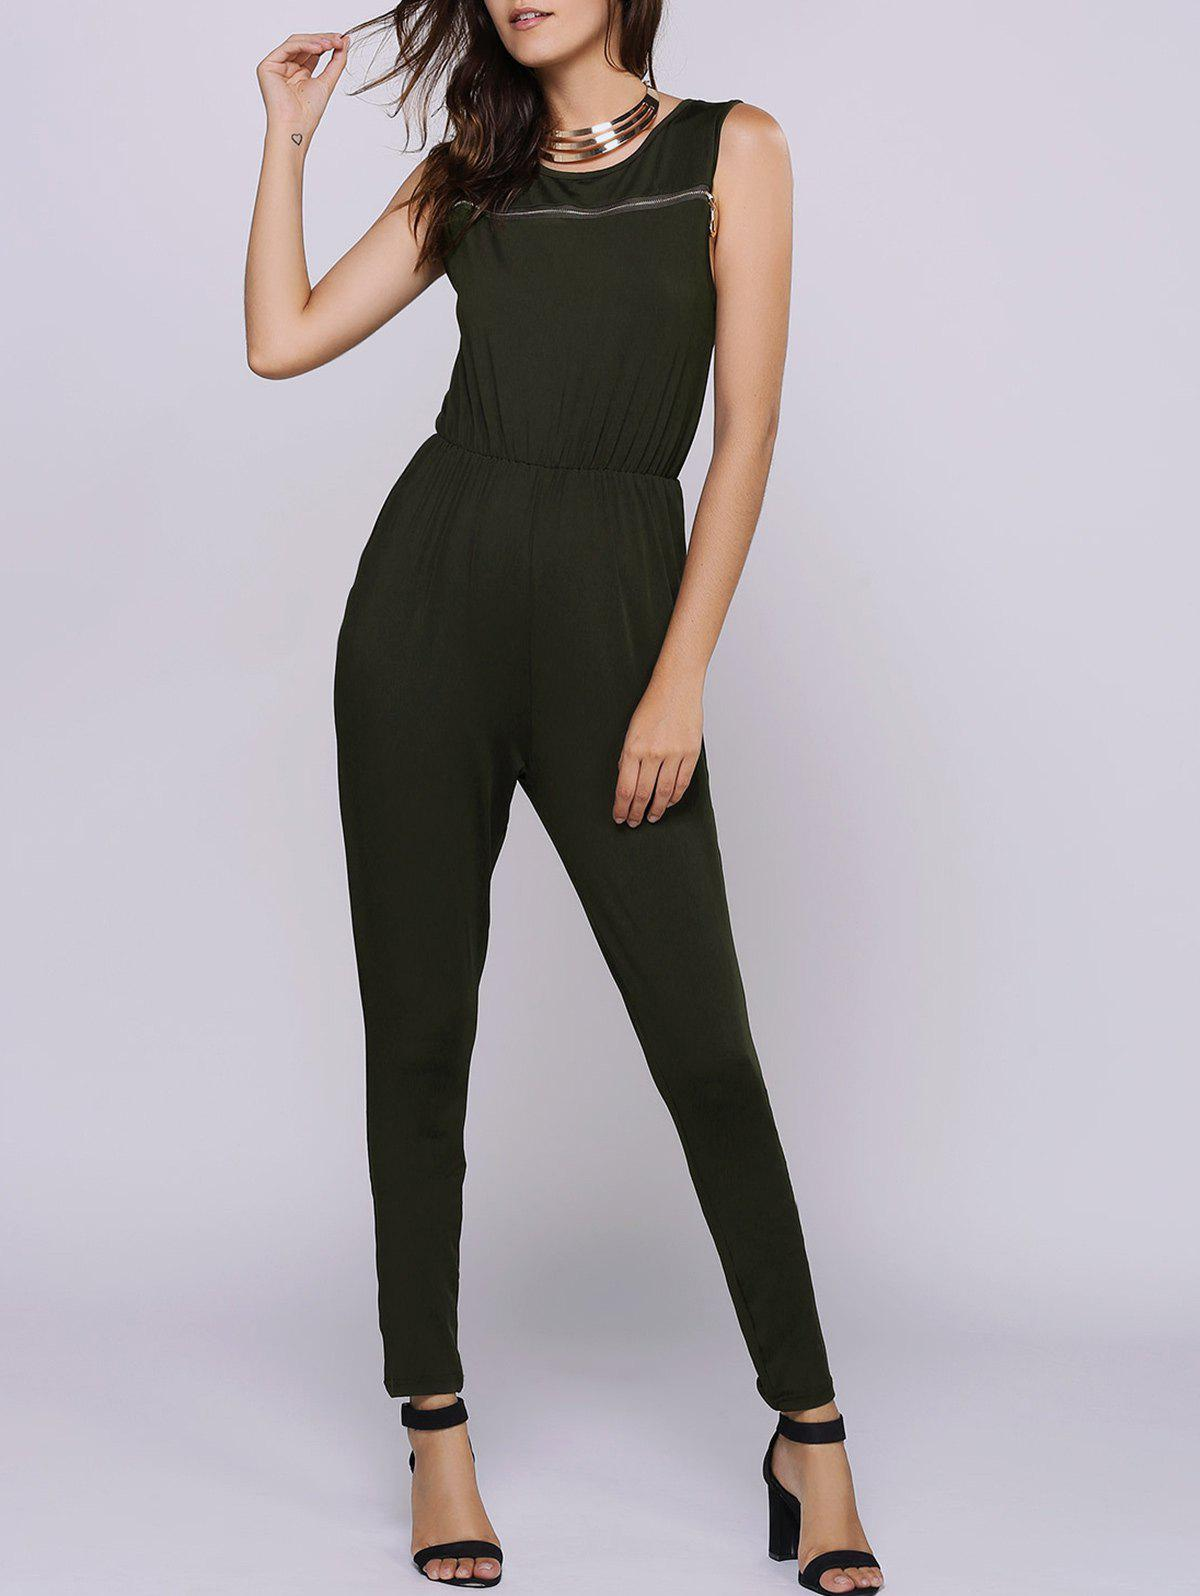 2018 Casual Jewel Collar Sleeveless Zipper Embellished Jumpsuit For